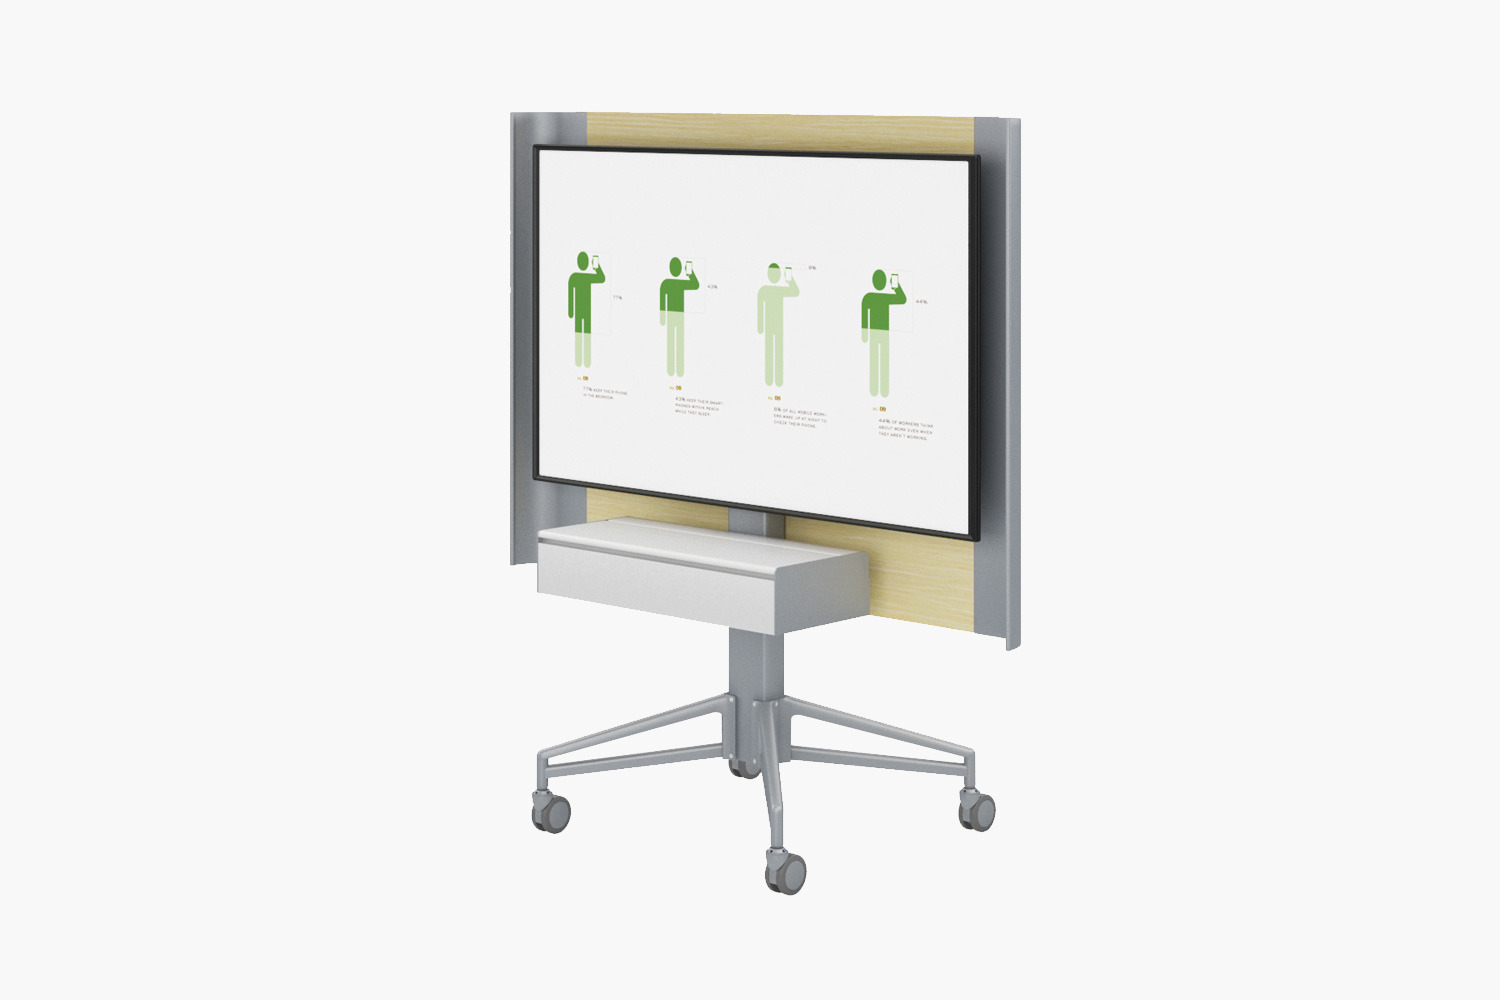 Technology In Furniture On Teknion Clubtalk Integrates People Technology And Furniture Attracting Engaging Students Who Want To Connect Share Knowledge Education Classroom